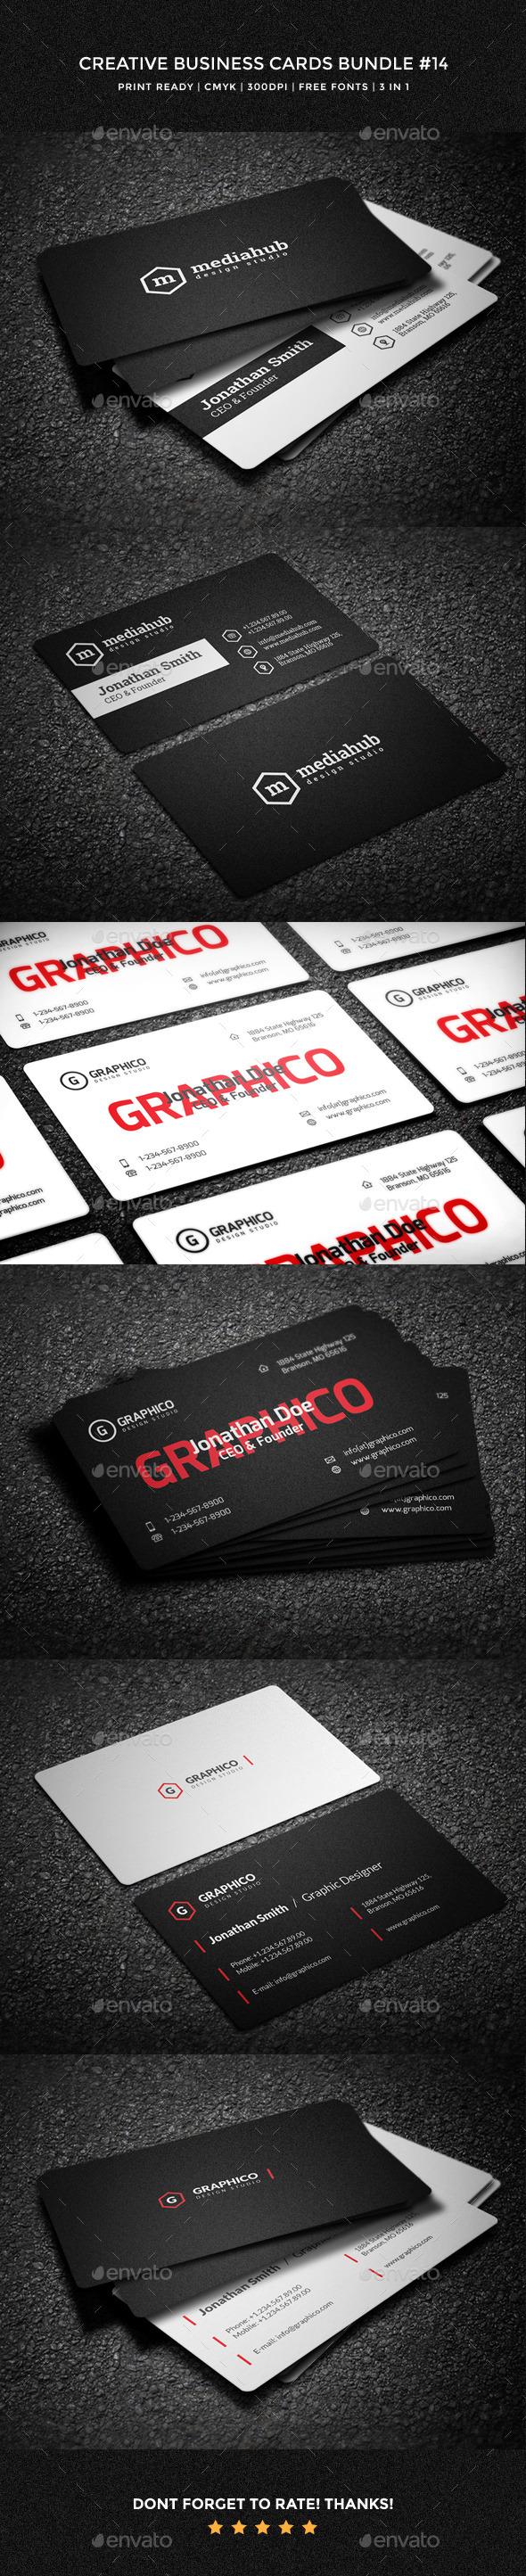 Creative Business Cards Bundle - 14 - Creative Business Cards